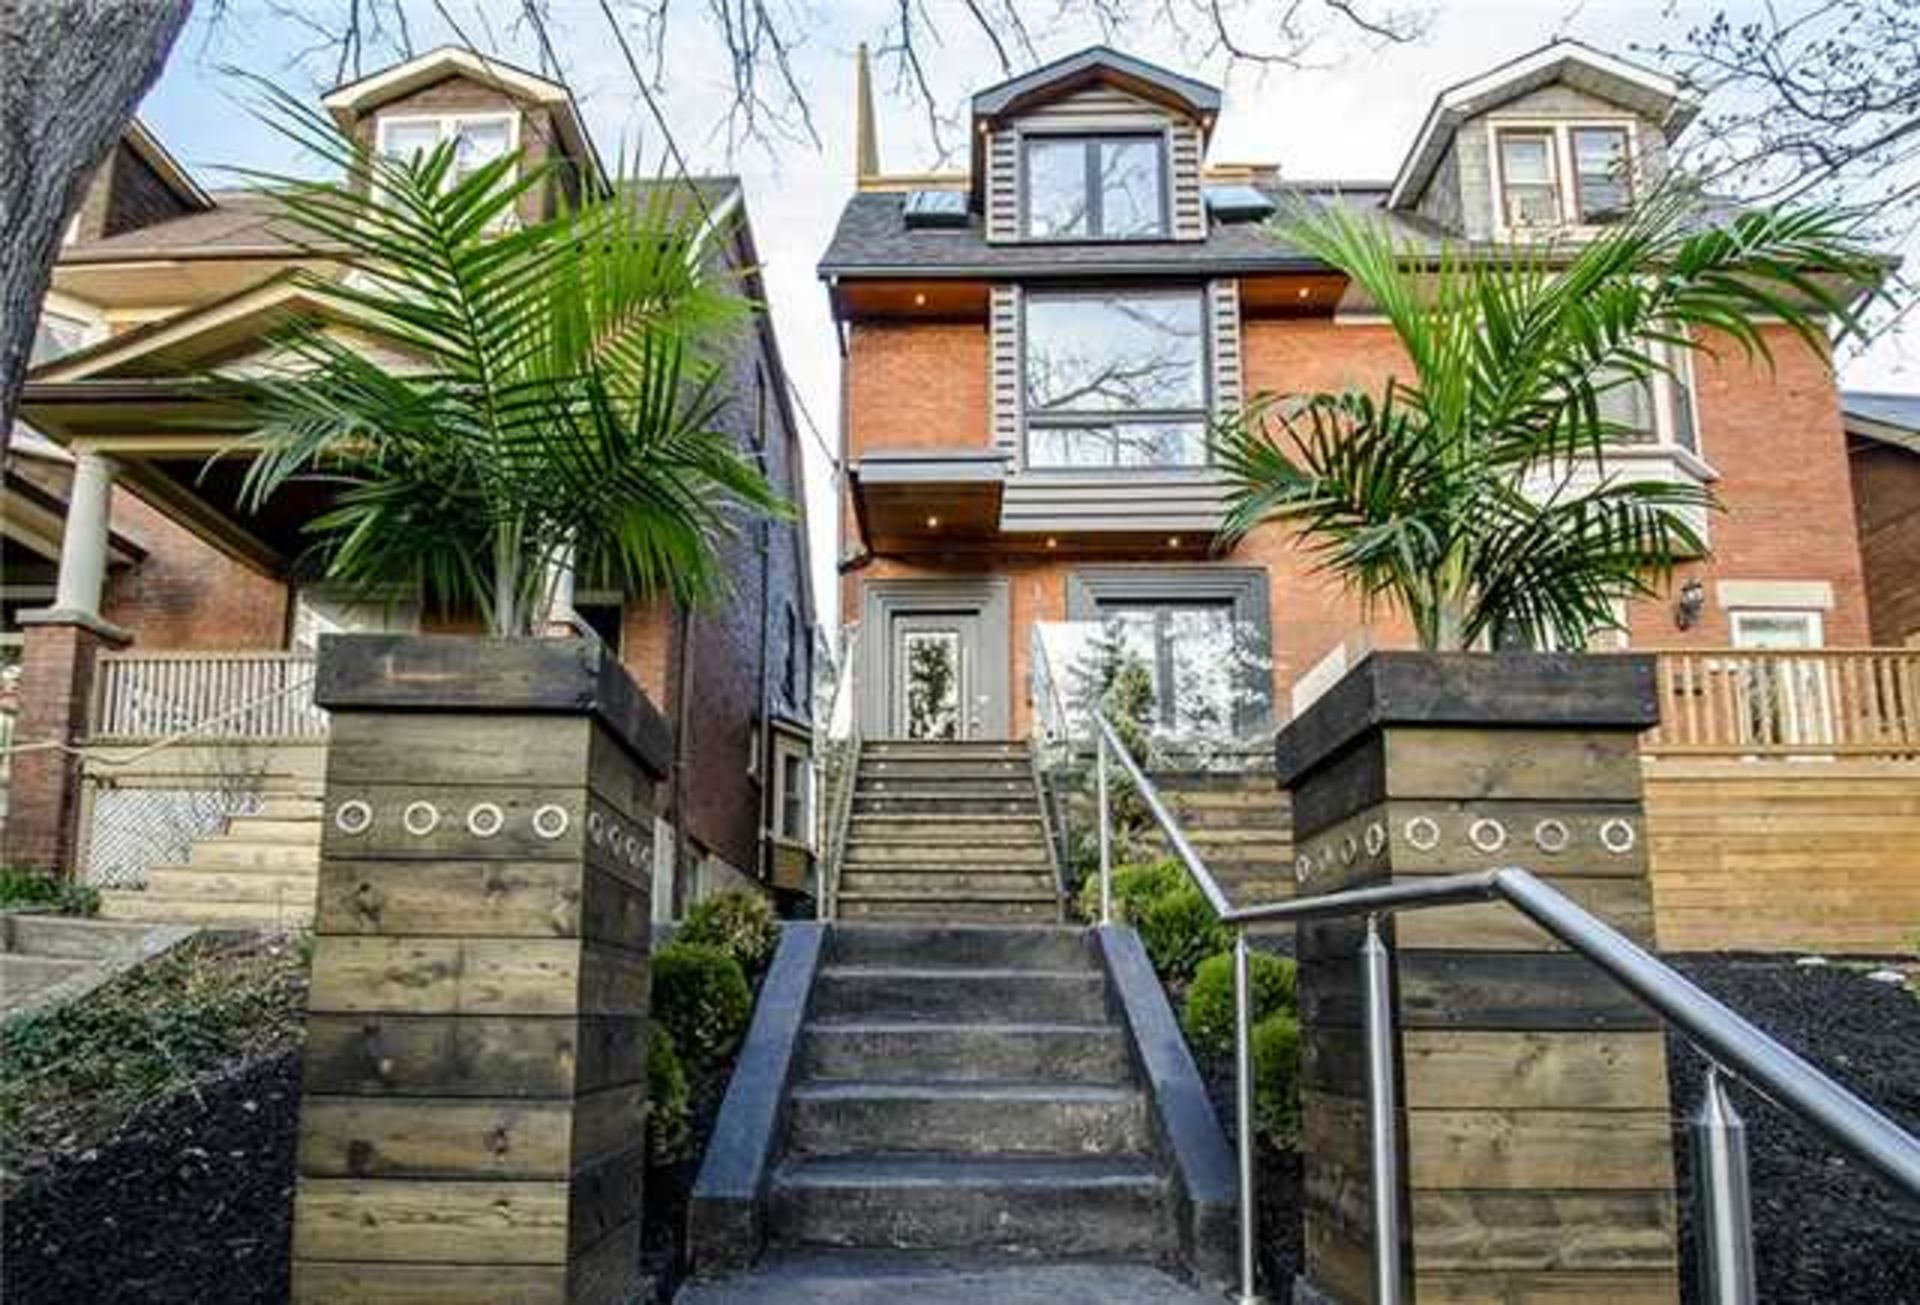 Home of the Month: Unique Semi-detached home near high park